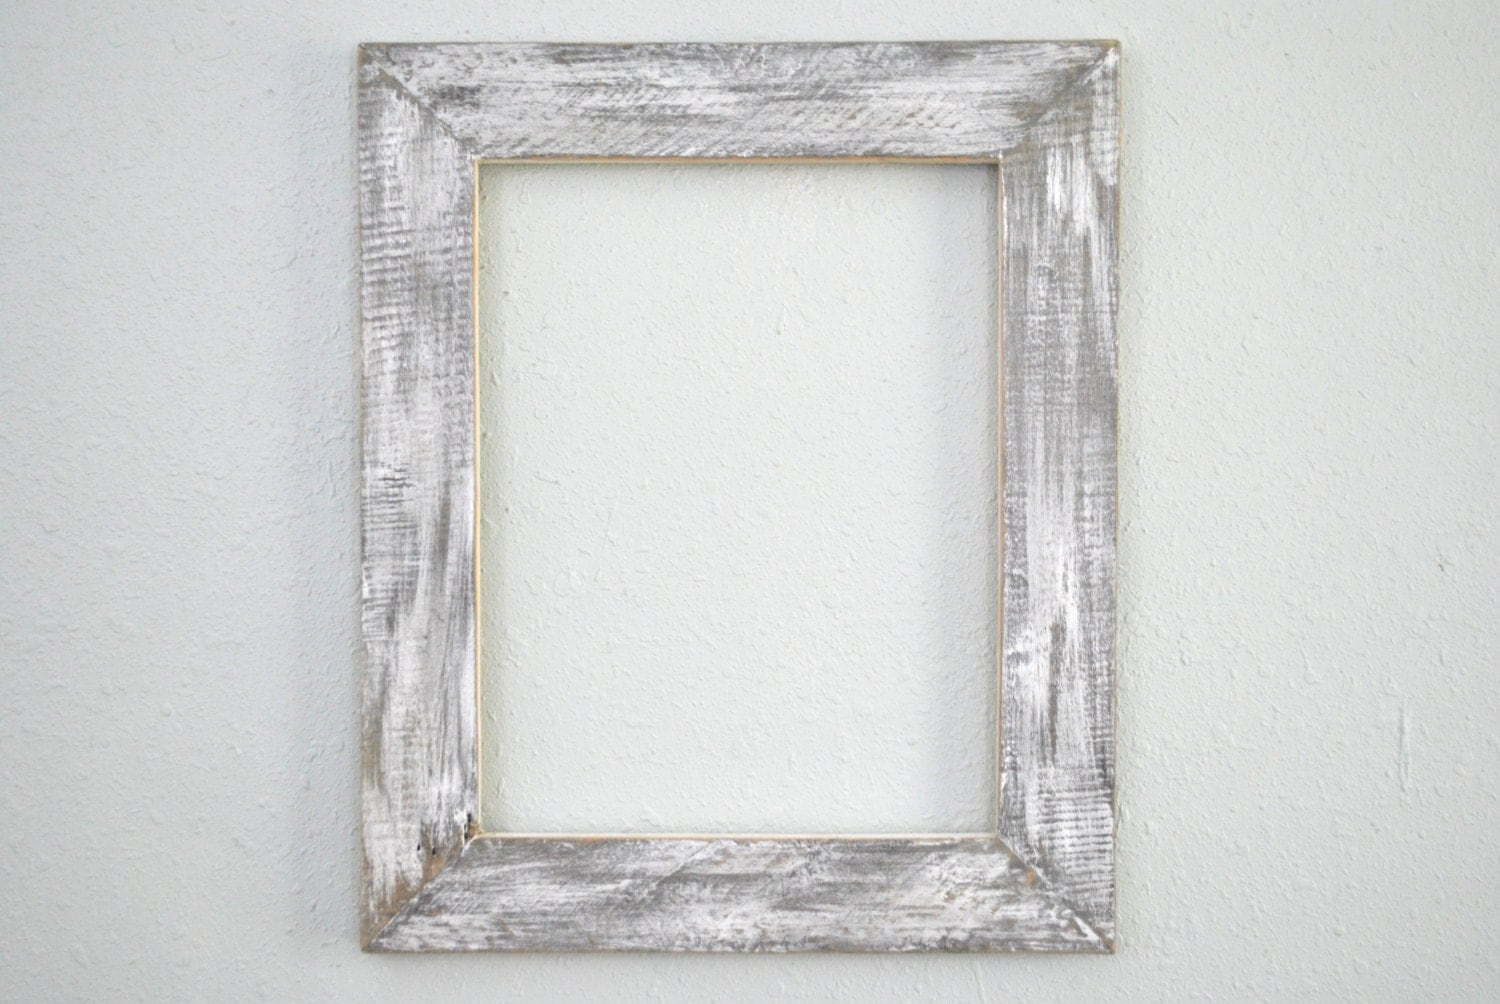 11x14 Distressed White Frame Rustic Weathered Wood Old